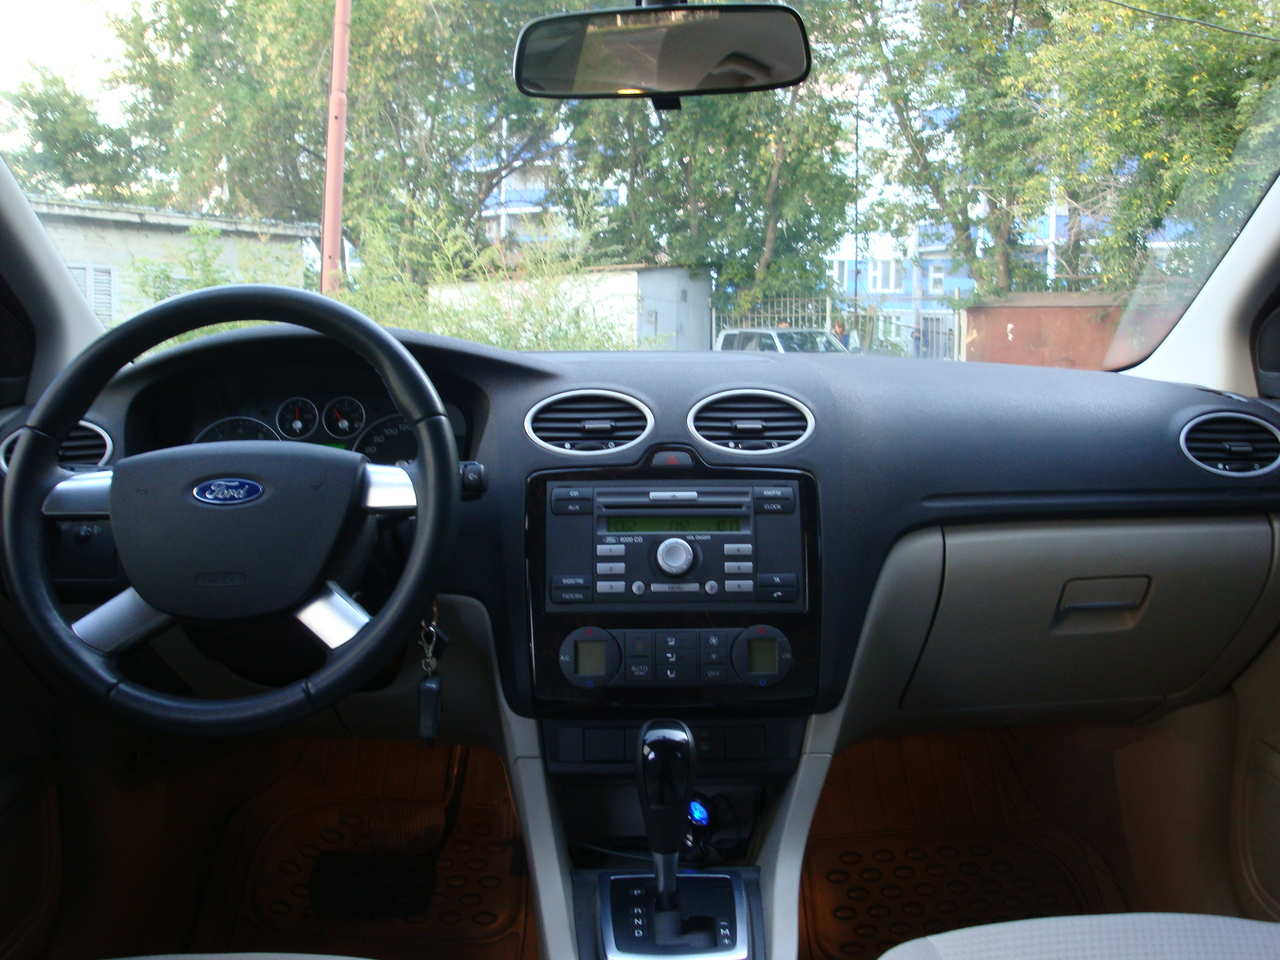 2007 Ford Focus Photos 1 6 Gasoline Ff Automatic For Sale